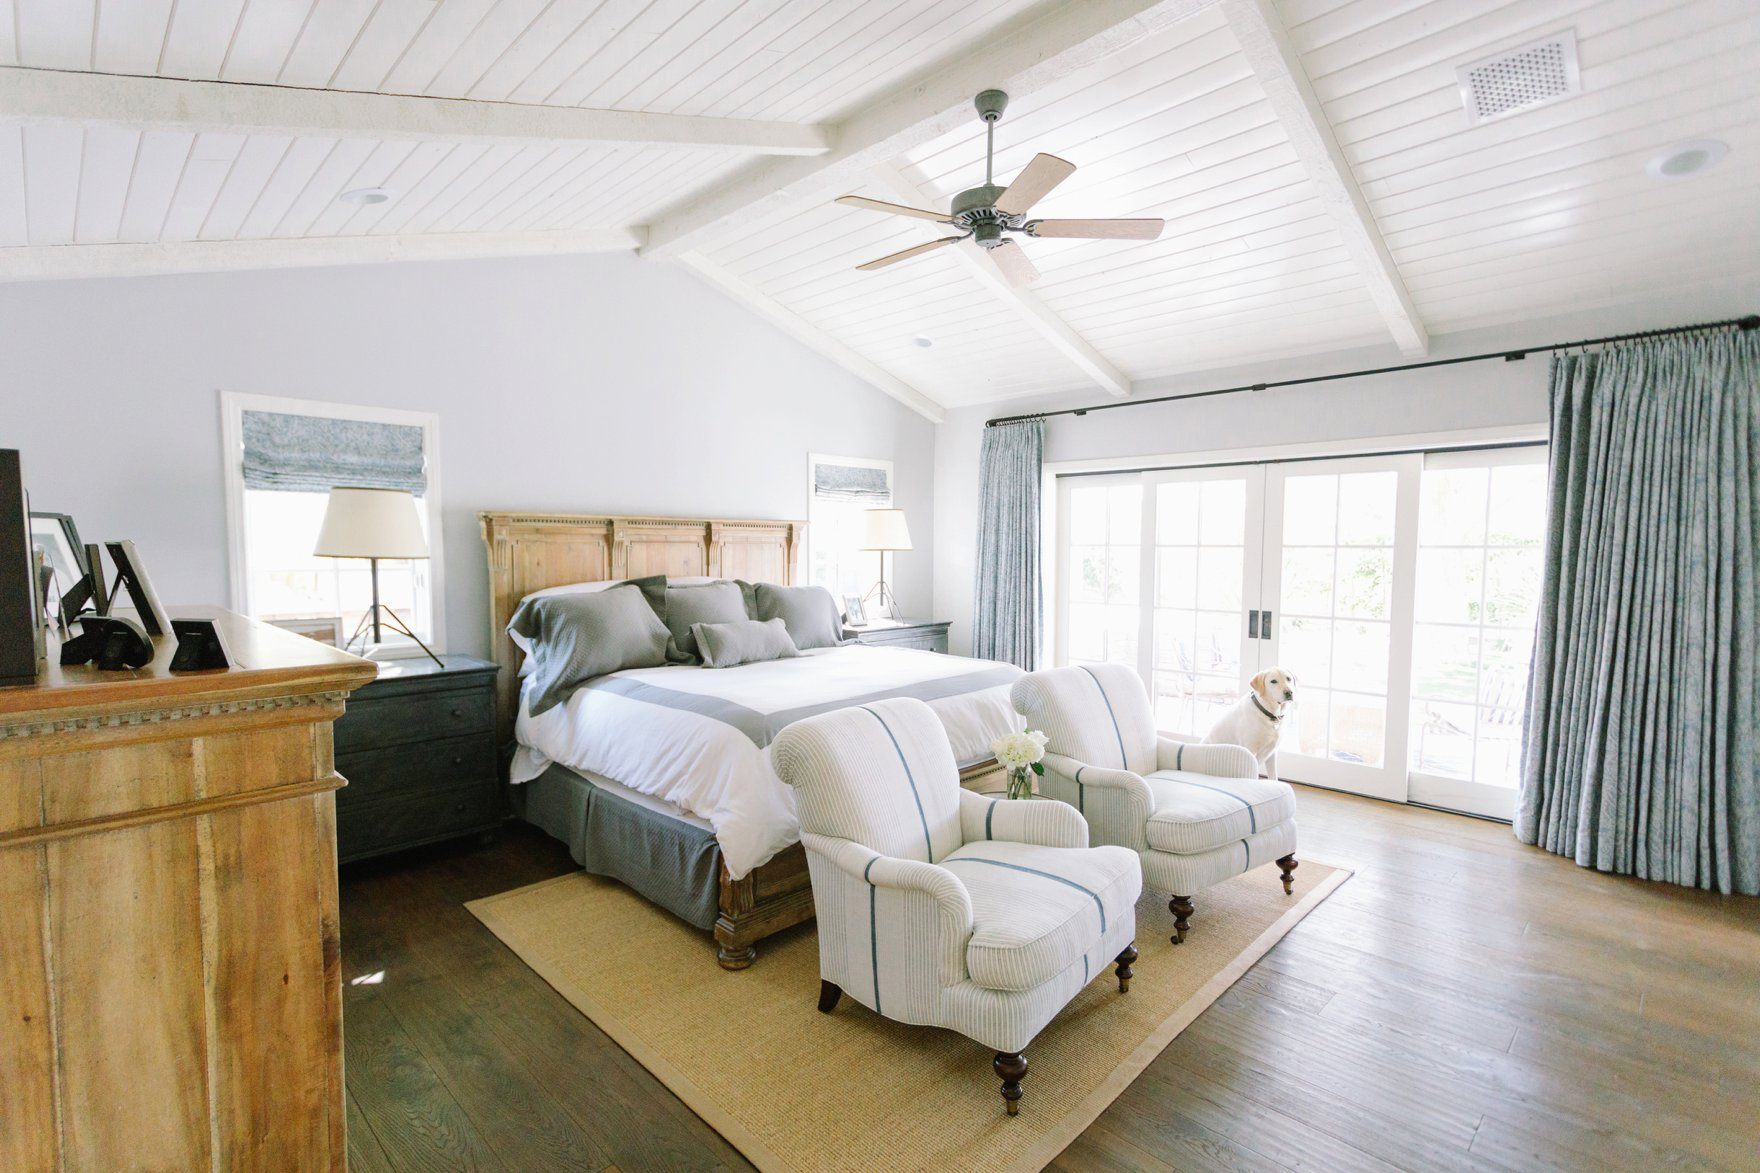 Central Phoenix arizona house tour To Have to Host Lory Parson living area spaces bedroom